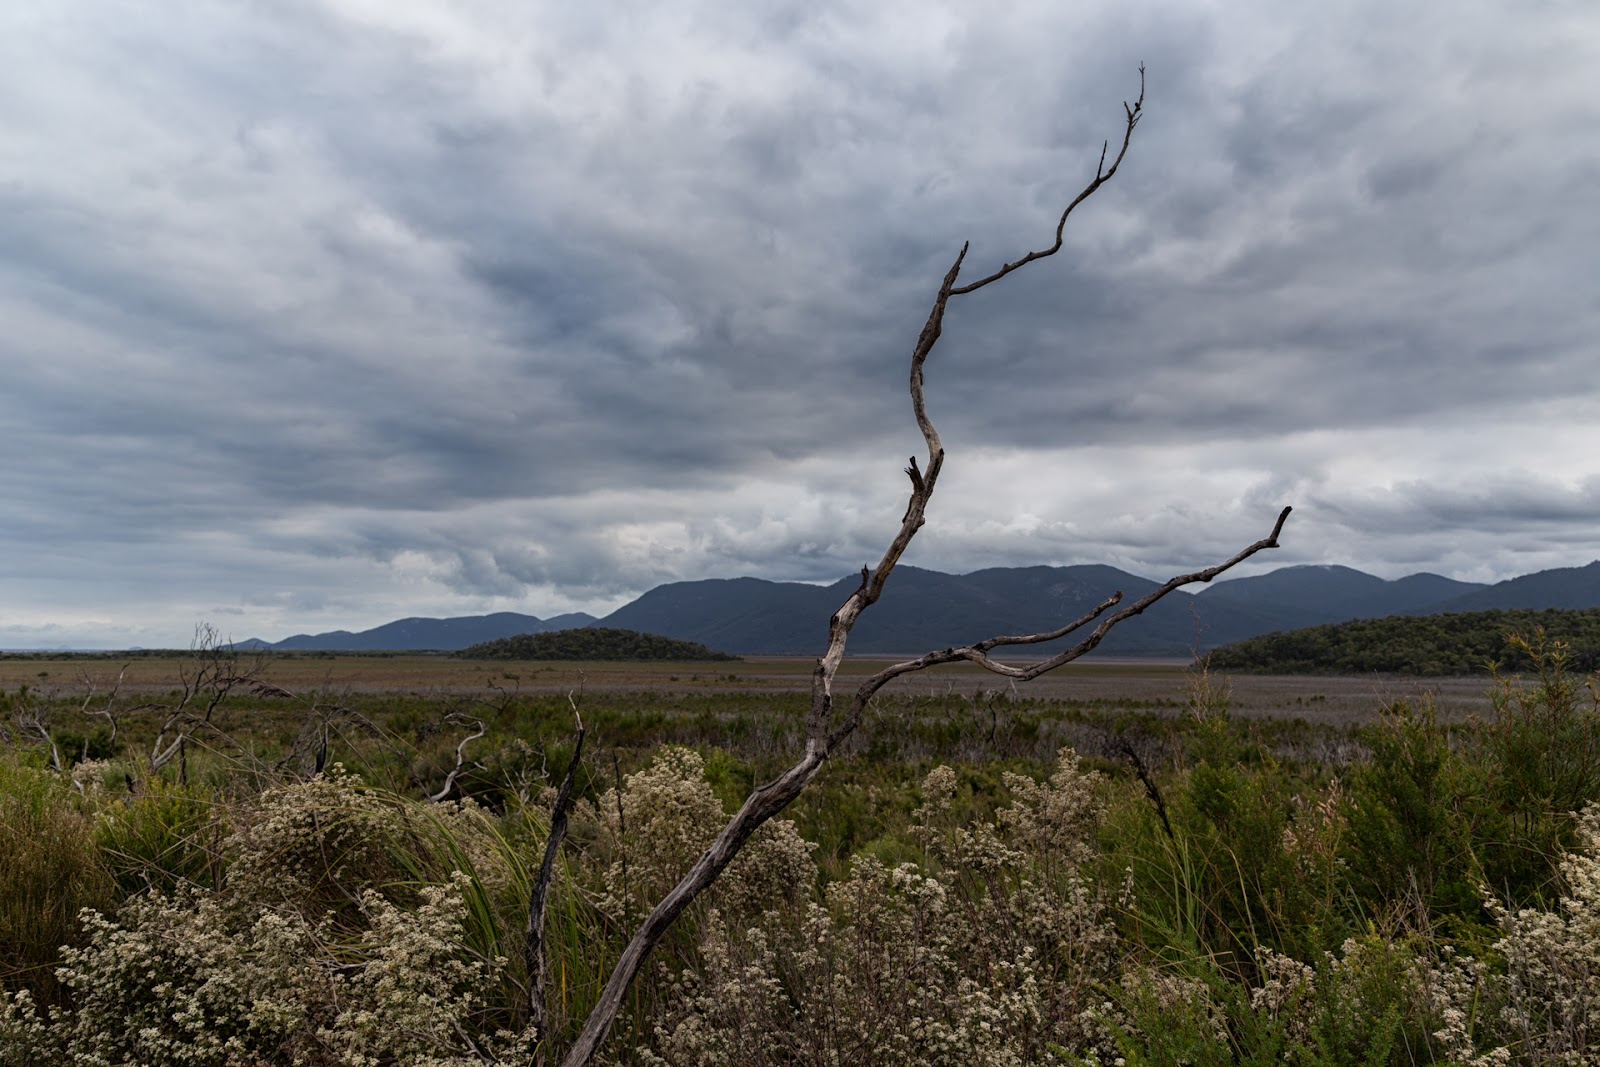 clouds over wilsons promontory